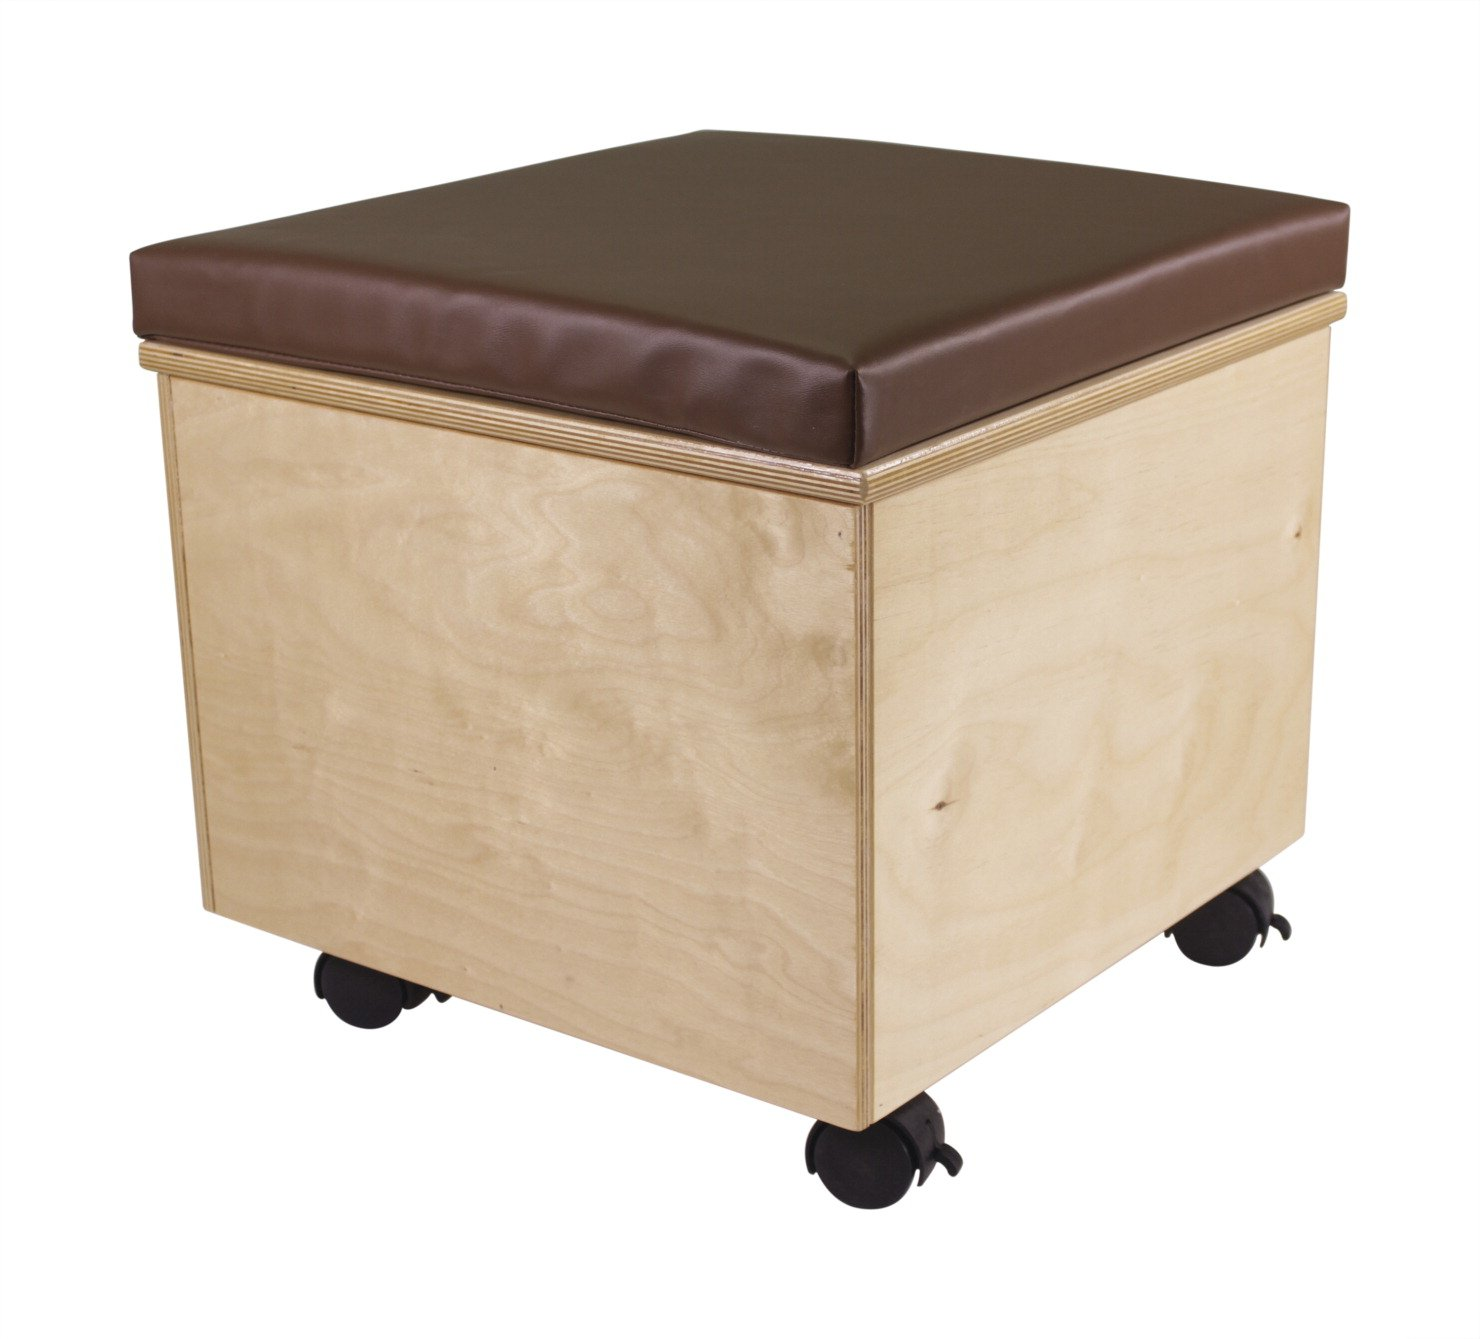 Childcraft Help On Wheels Mobile Teacher Stool, 18 x 18 x 18 Inches